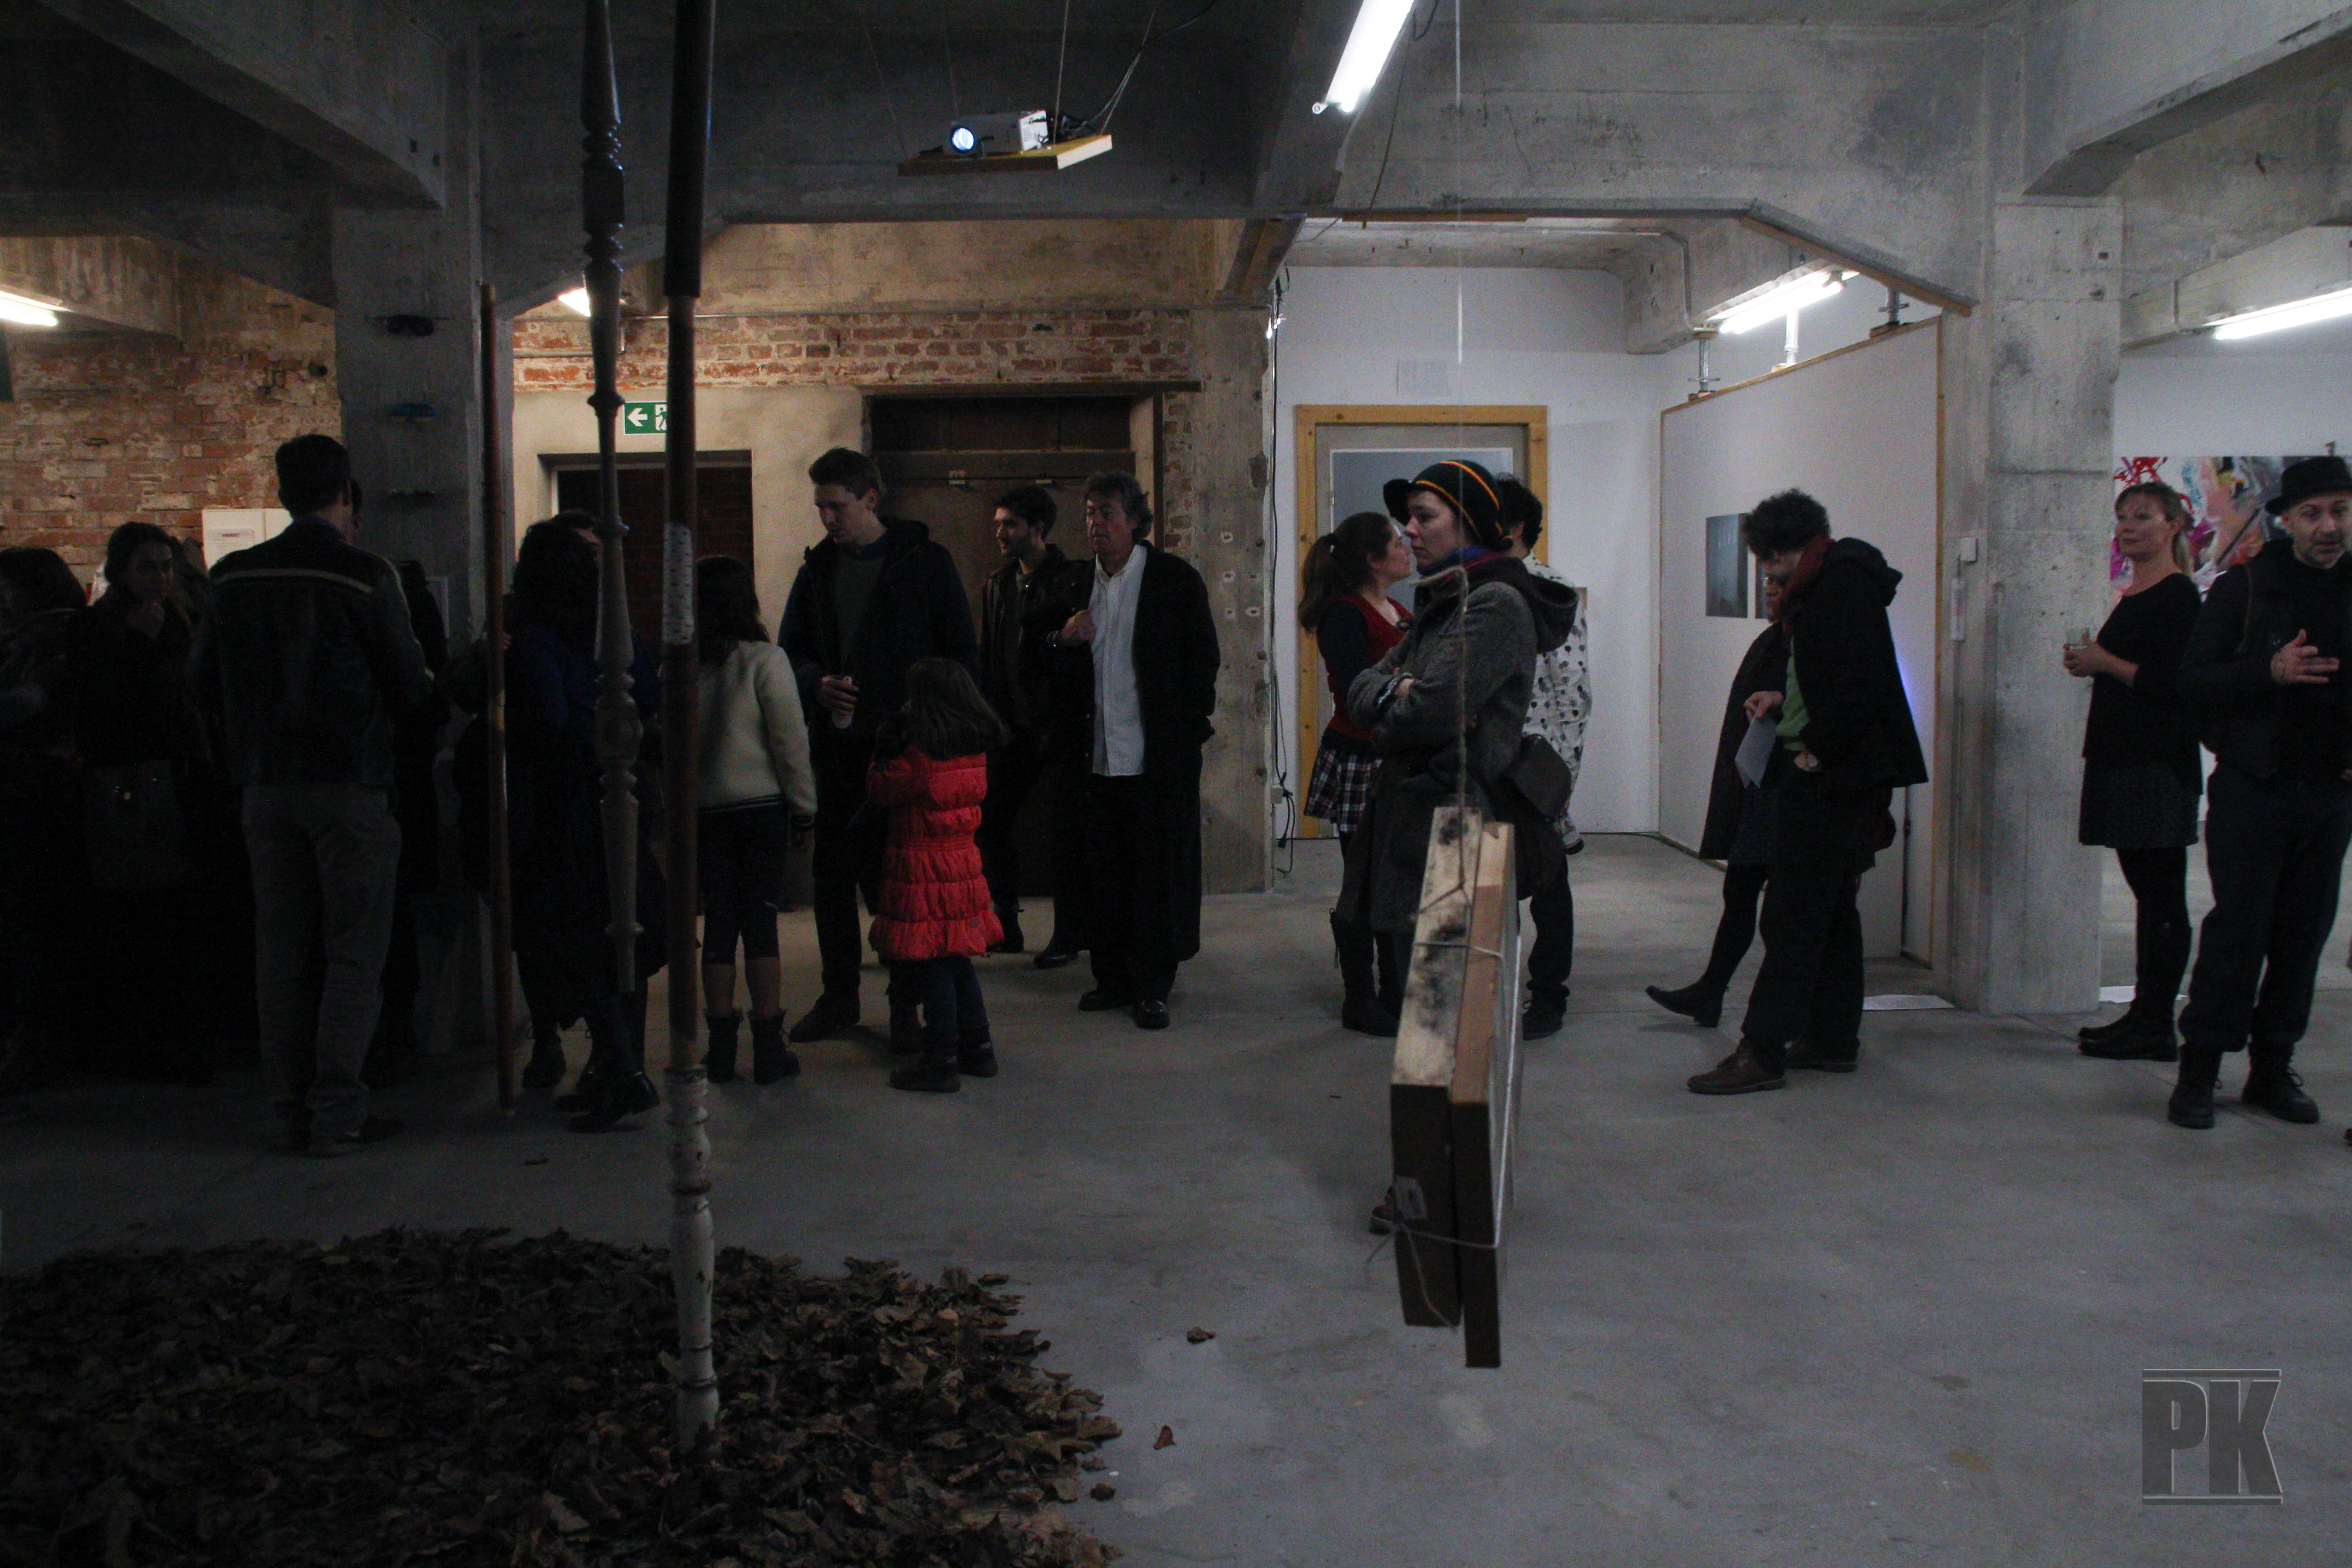 181418 vernissage (review) SPOOR PK rd 37 watermark-4